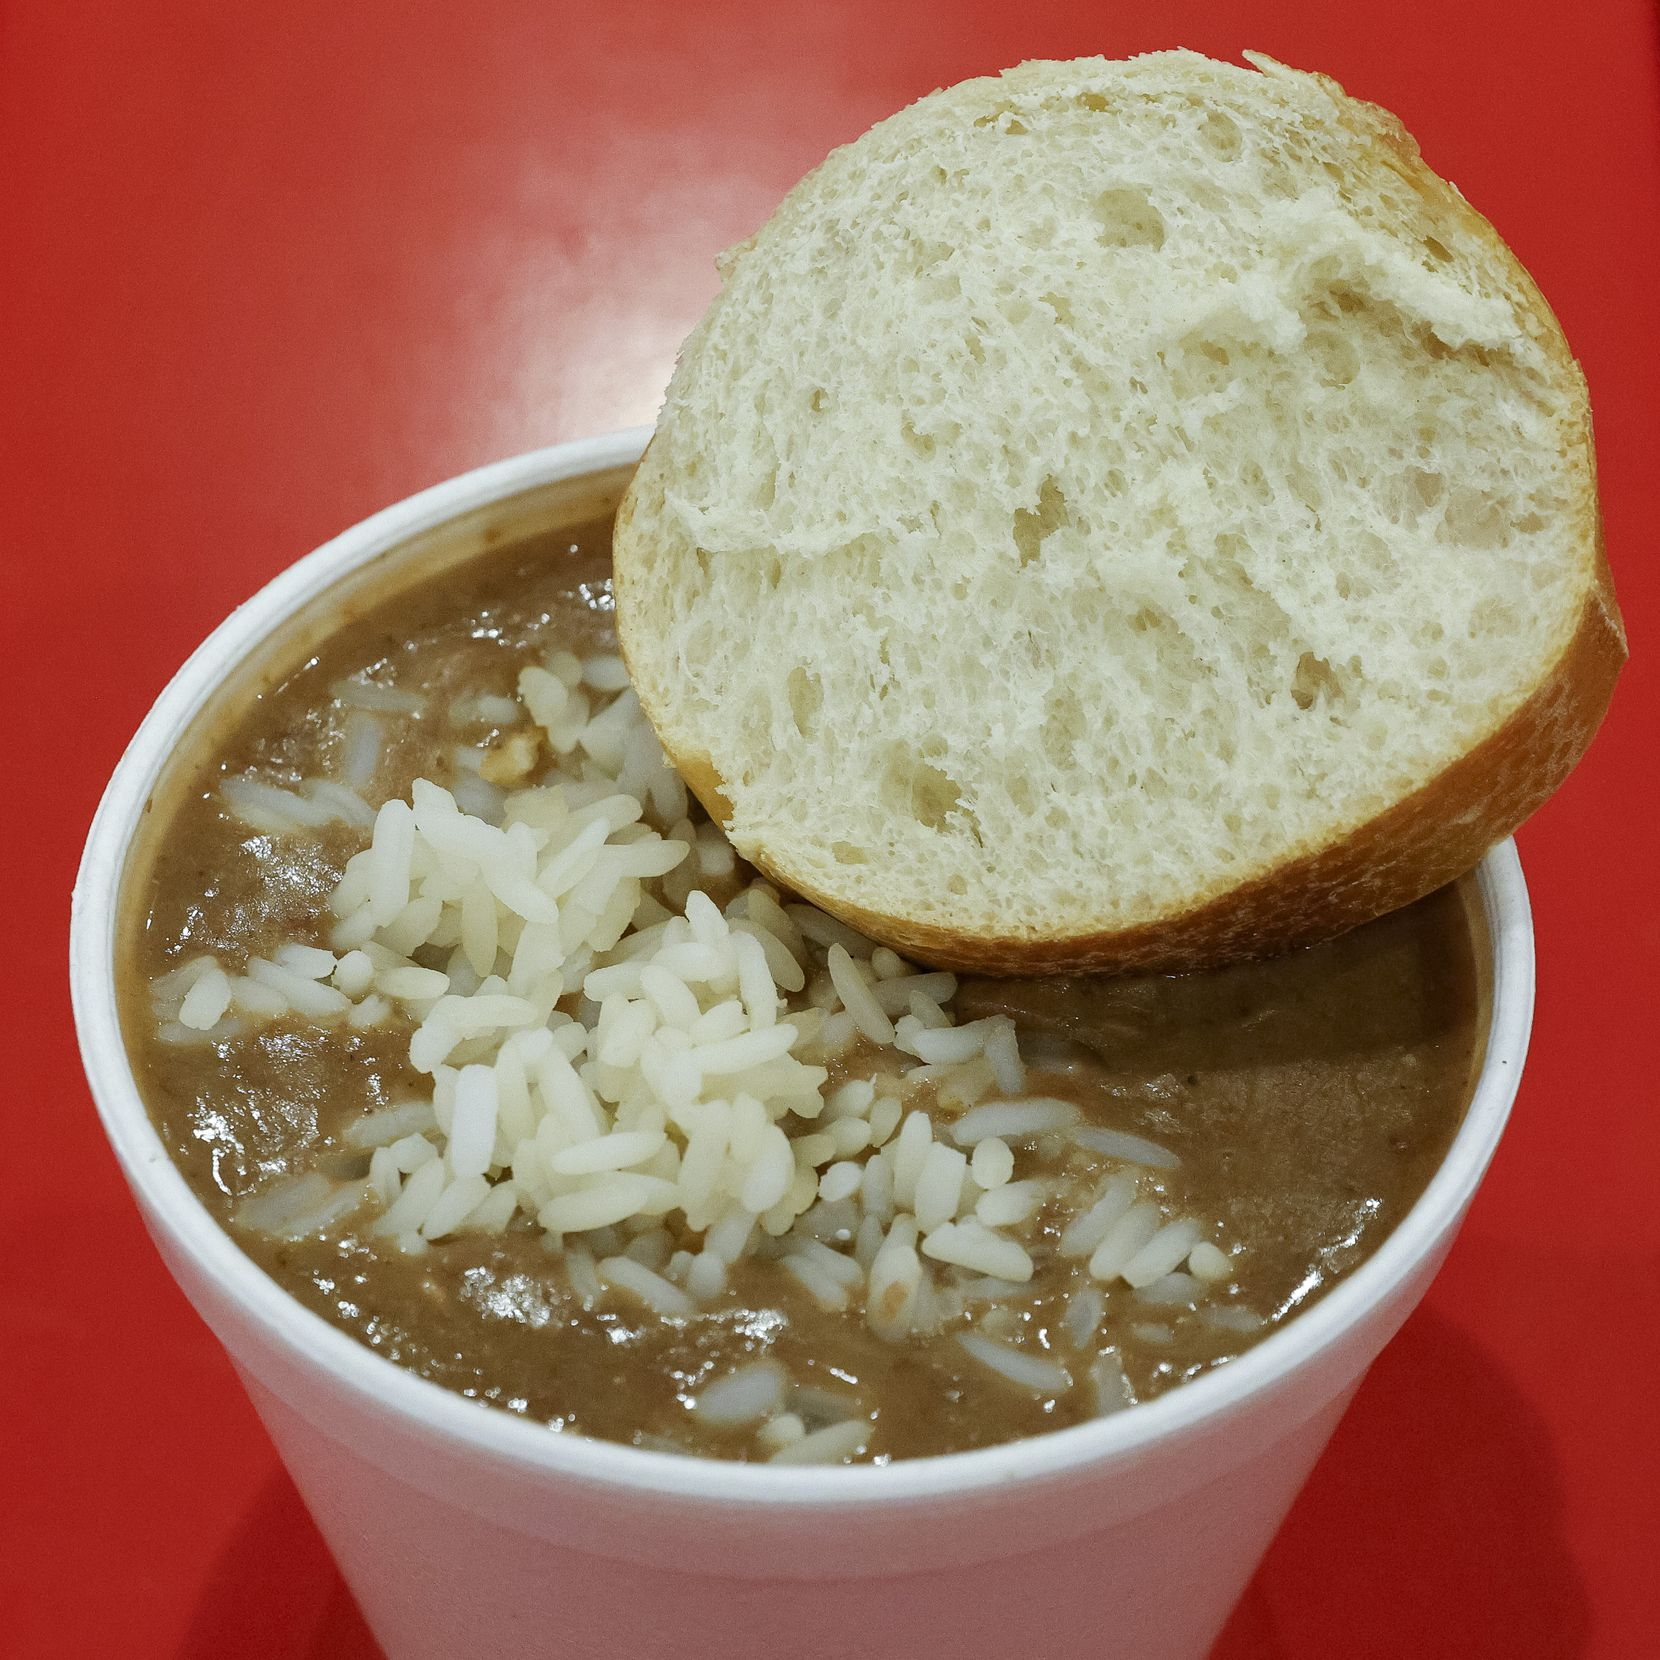 One vegan option is red beans and rice from Atnos Bayou Kitchen, a concession stand at the State Fair of Texas.